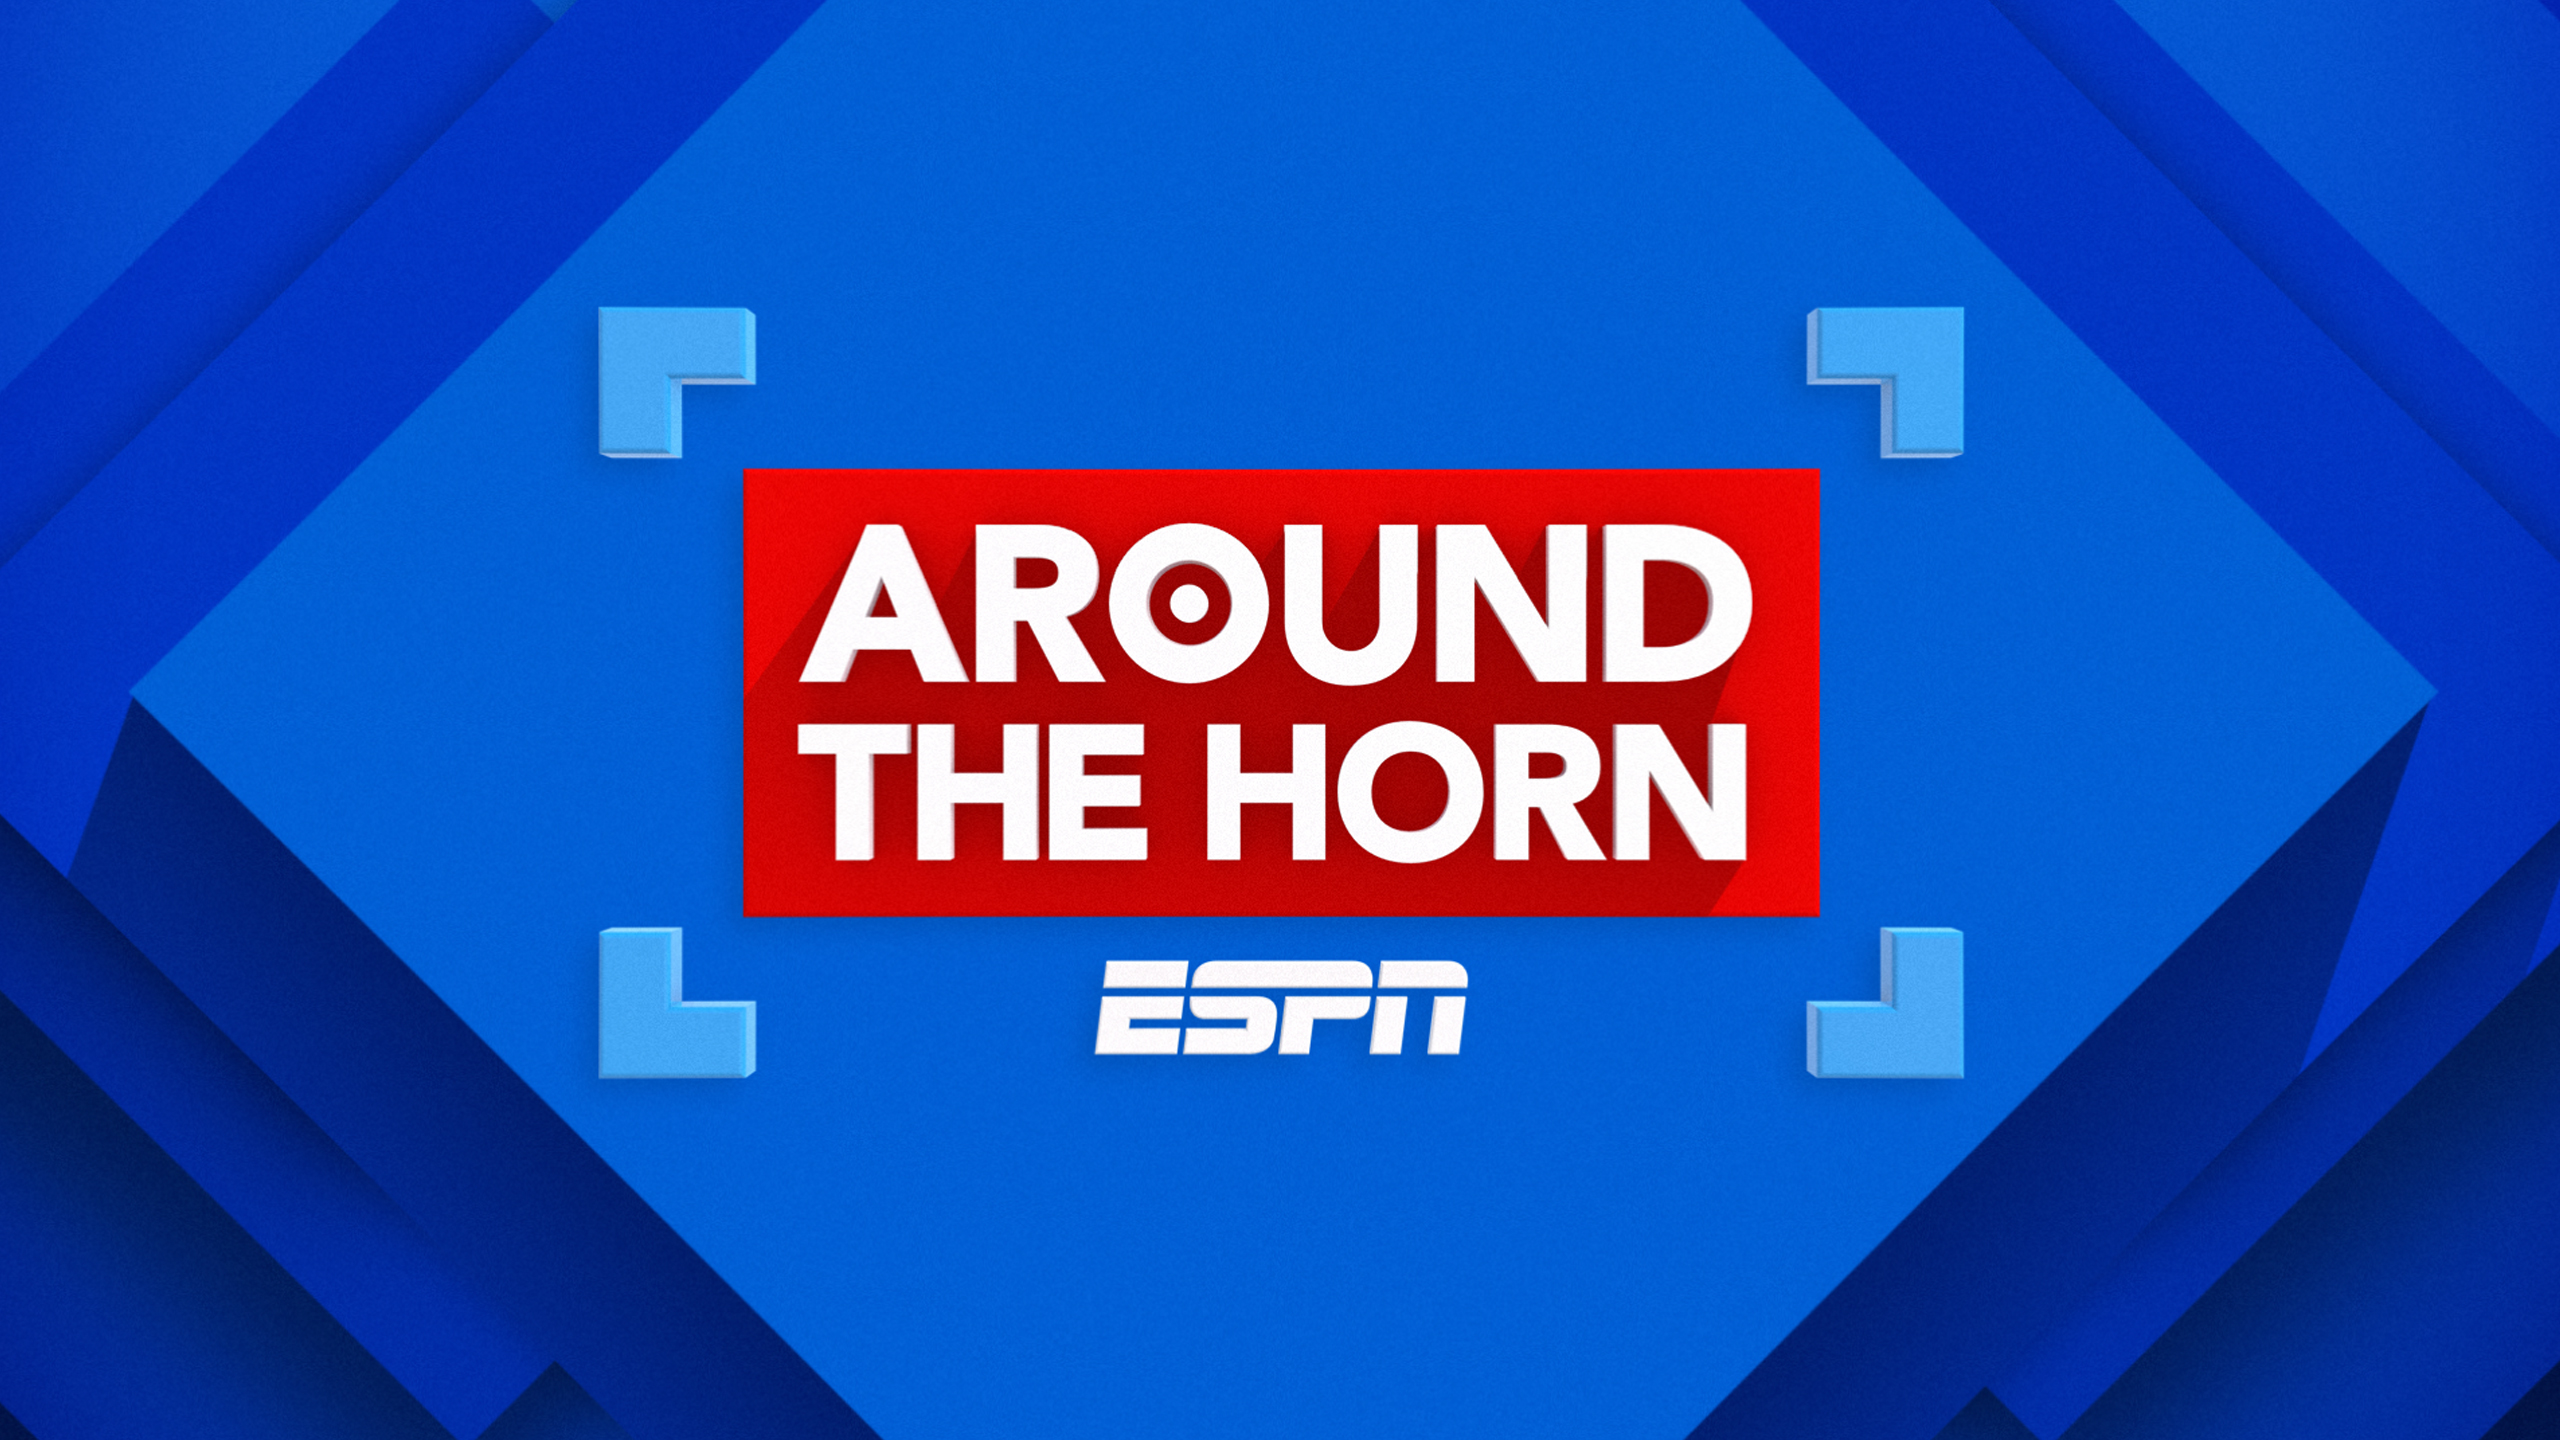 Wed, 9/19 - Around The Horn